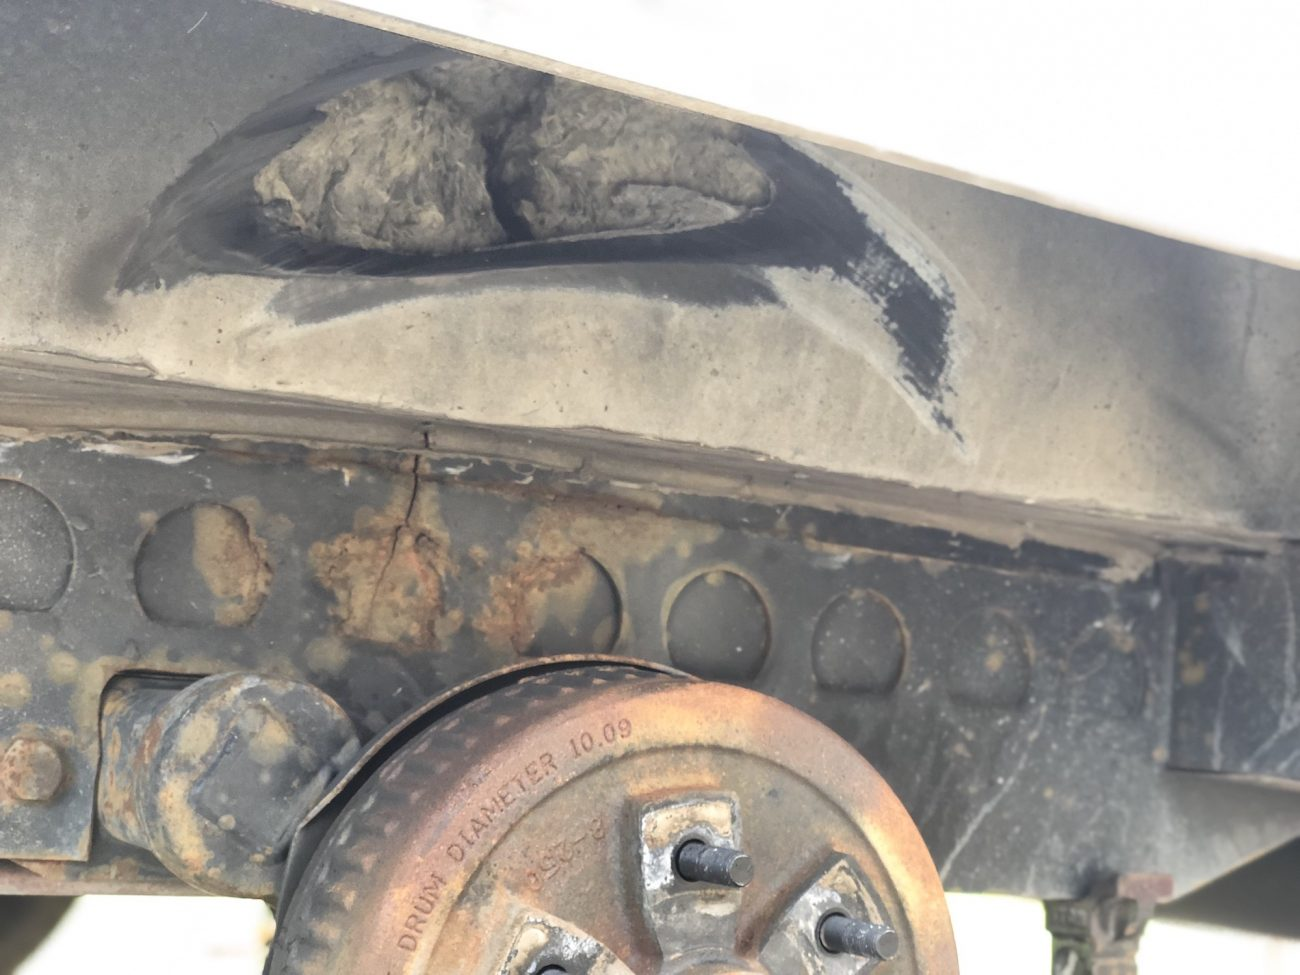 Problems with Airstream wheel well